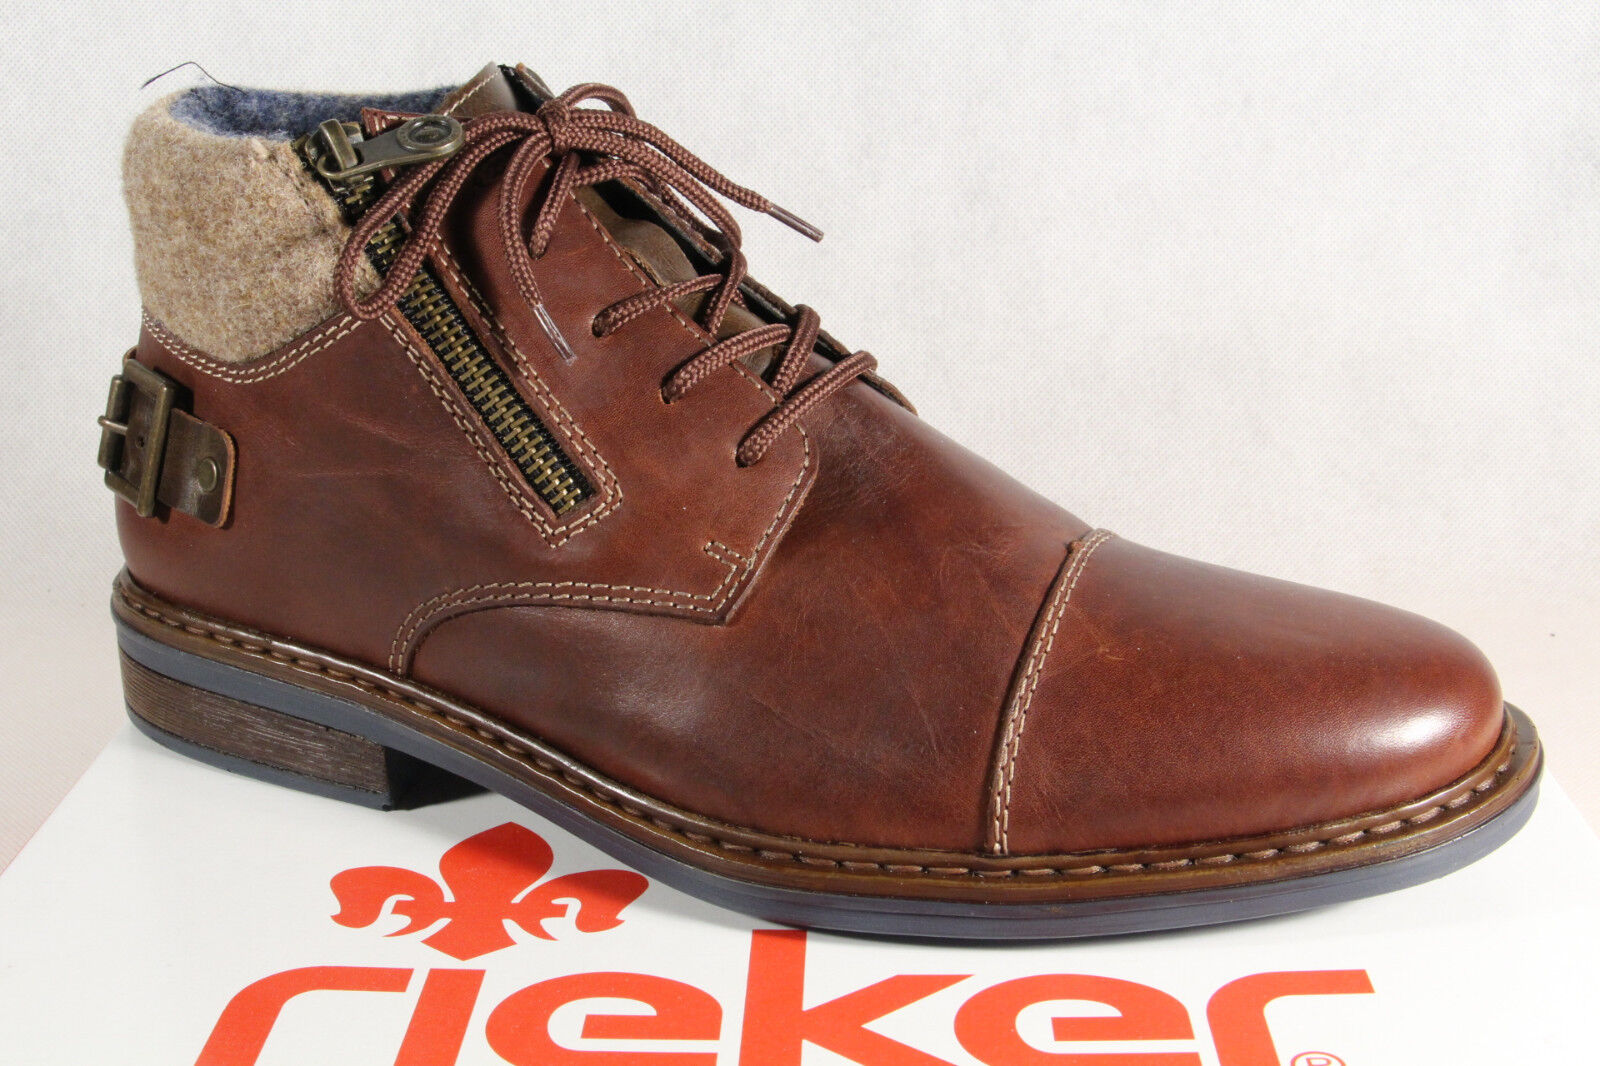 Rieker Men's Ankle Boots Ankle Boots Real Leather 37632 Brown New